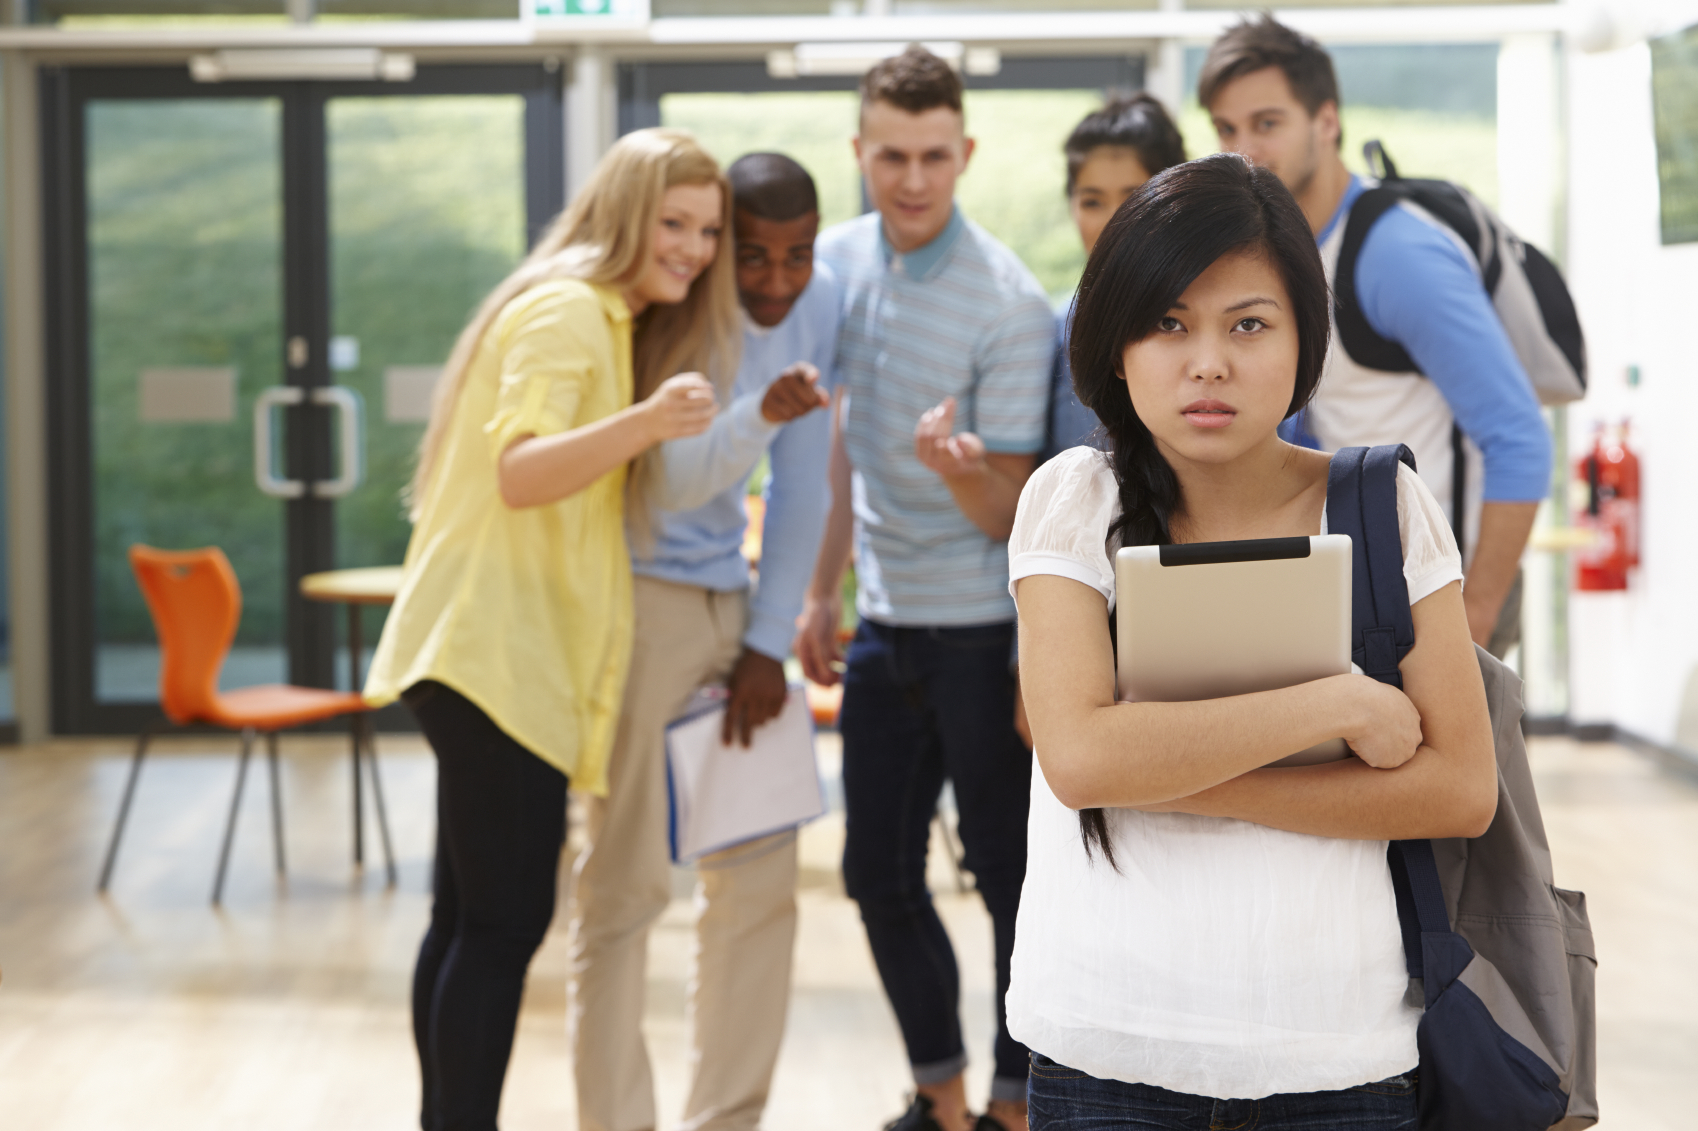 Female Student Being Bullied By Classmates